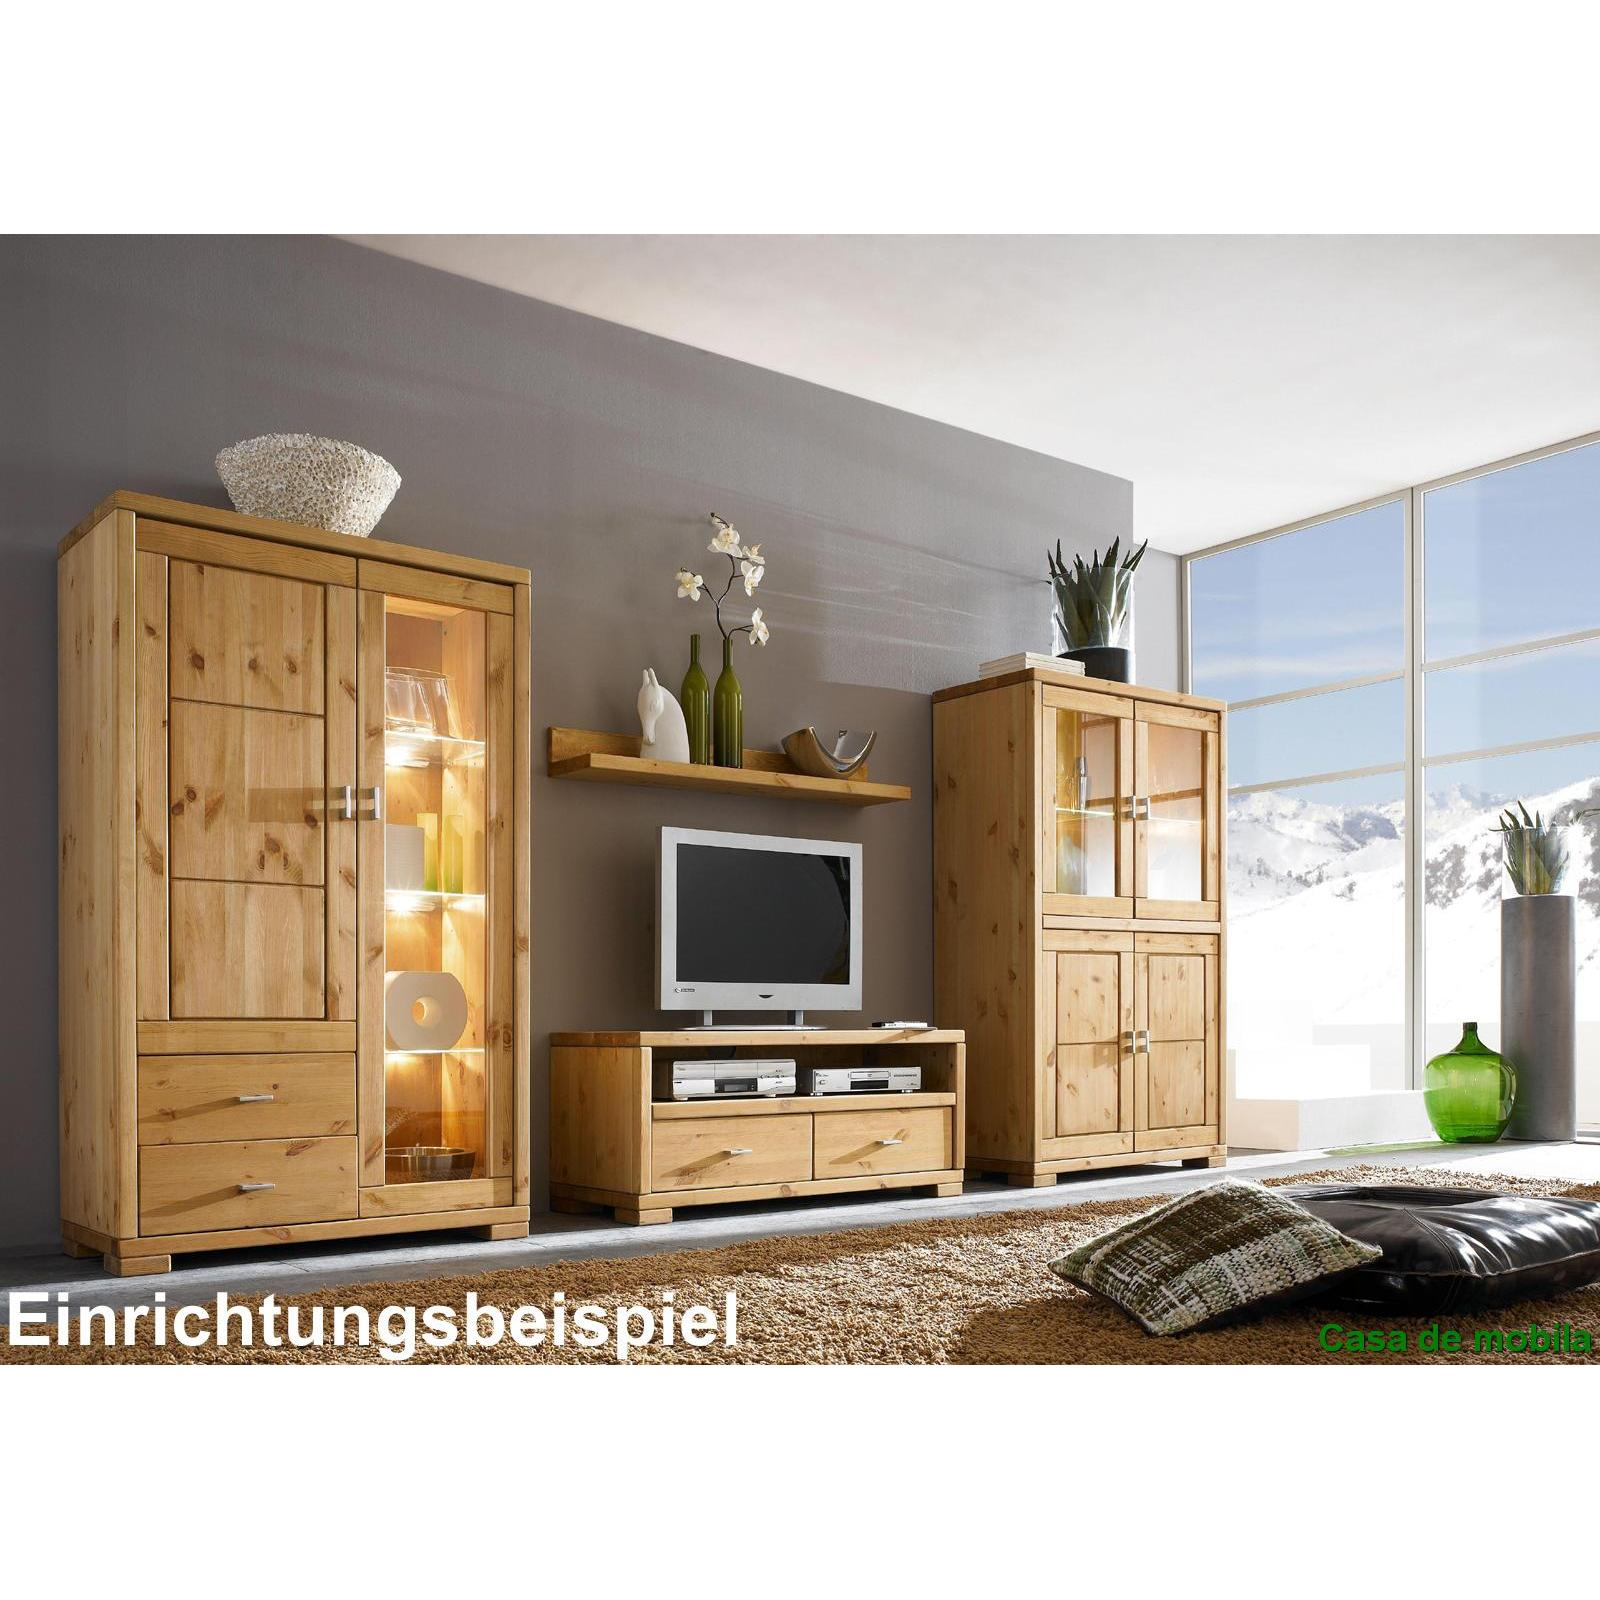 massivholz wandregal kiefer massiv gelaugt ge lt guldborg wandboard 120cm. Black Bedroom Furniture Sets. Home Design Ideas